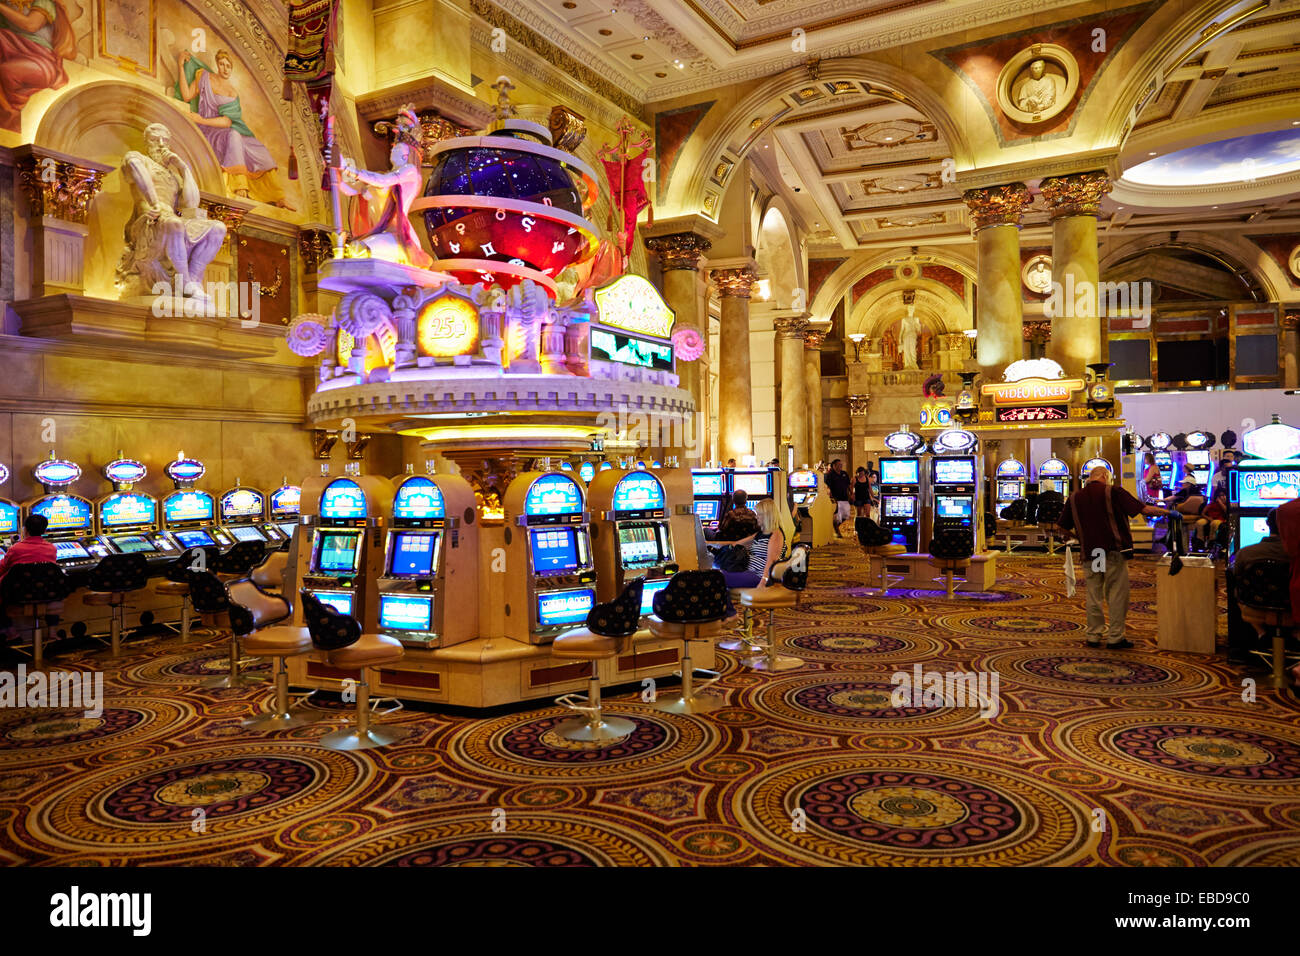 caesars palace online casino ra game